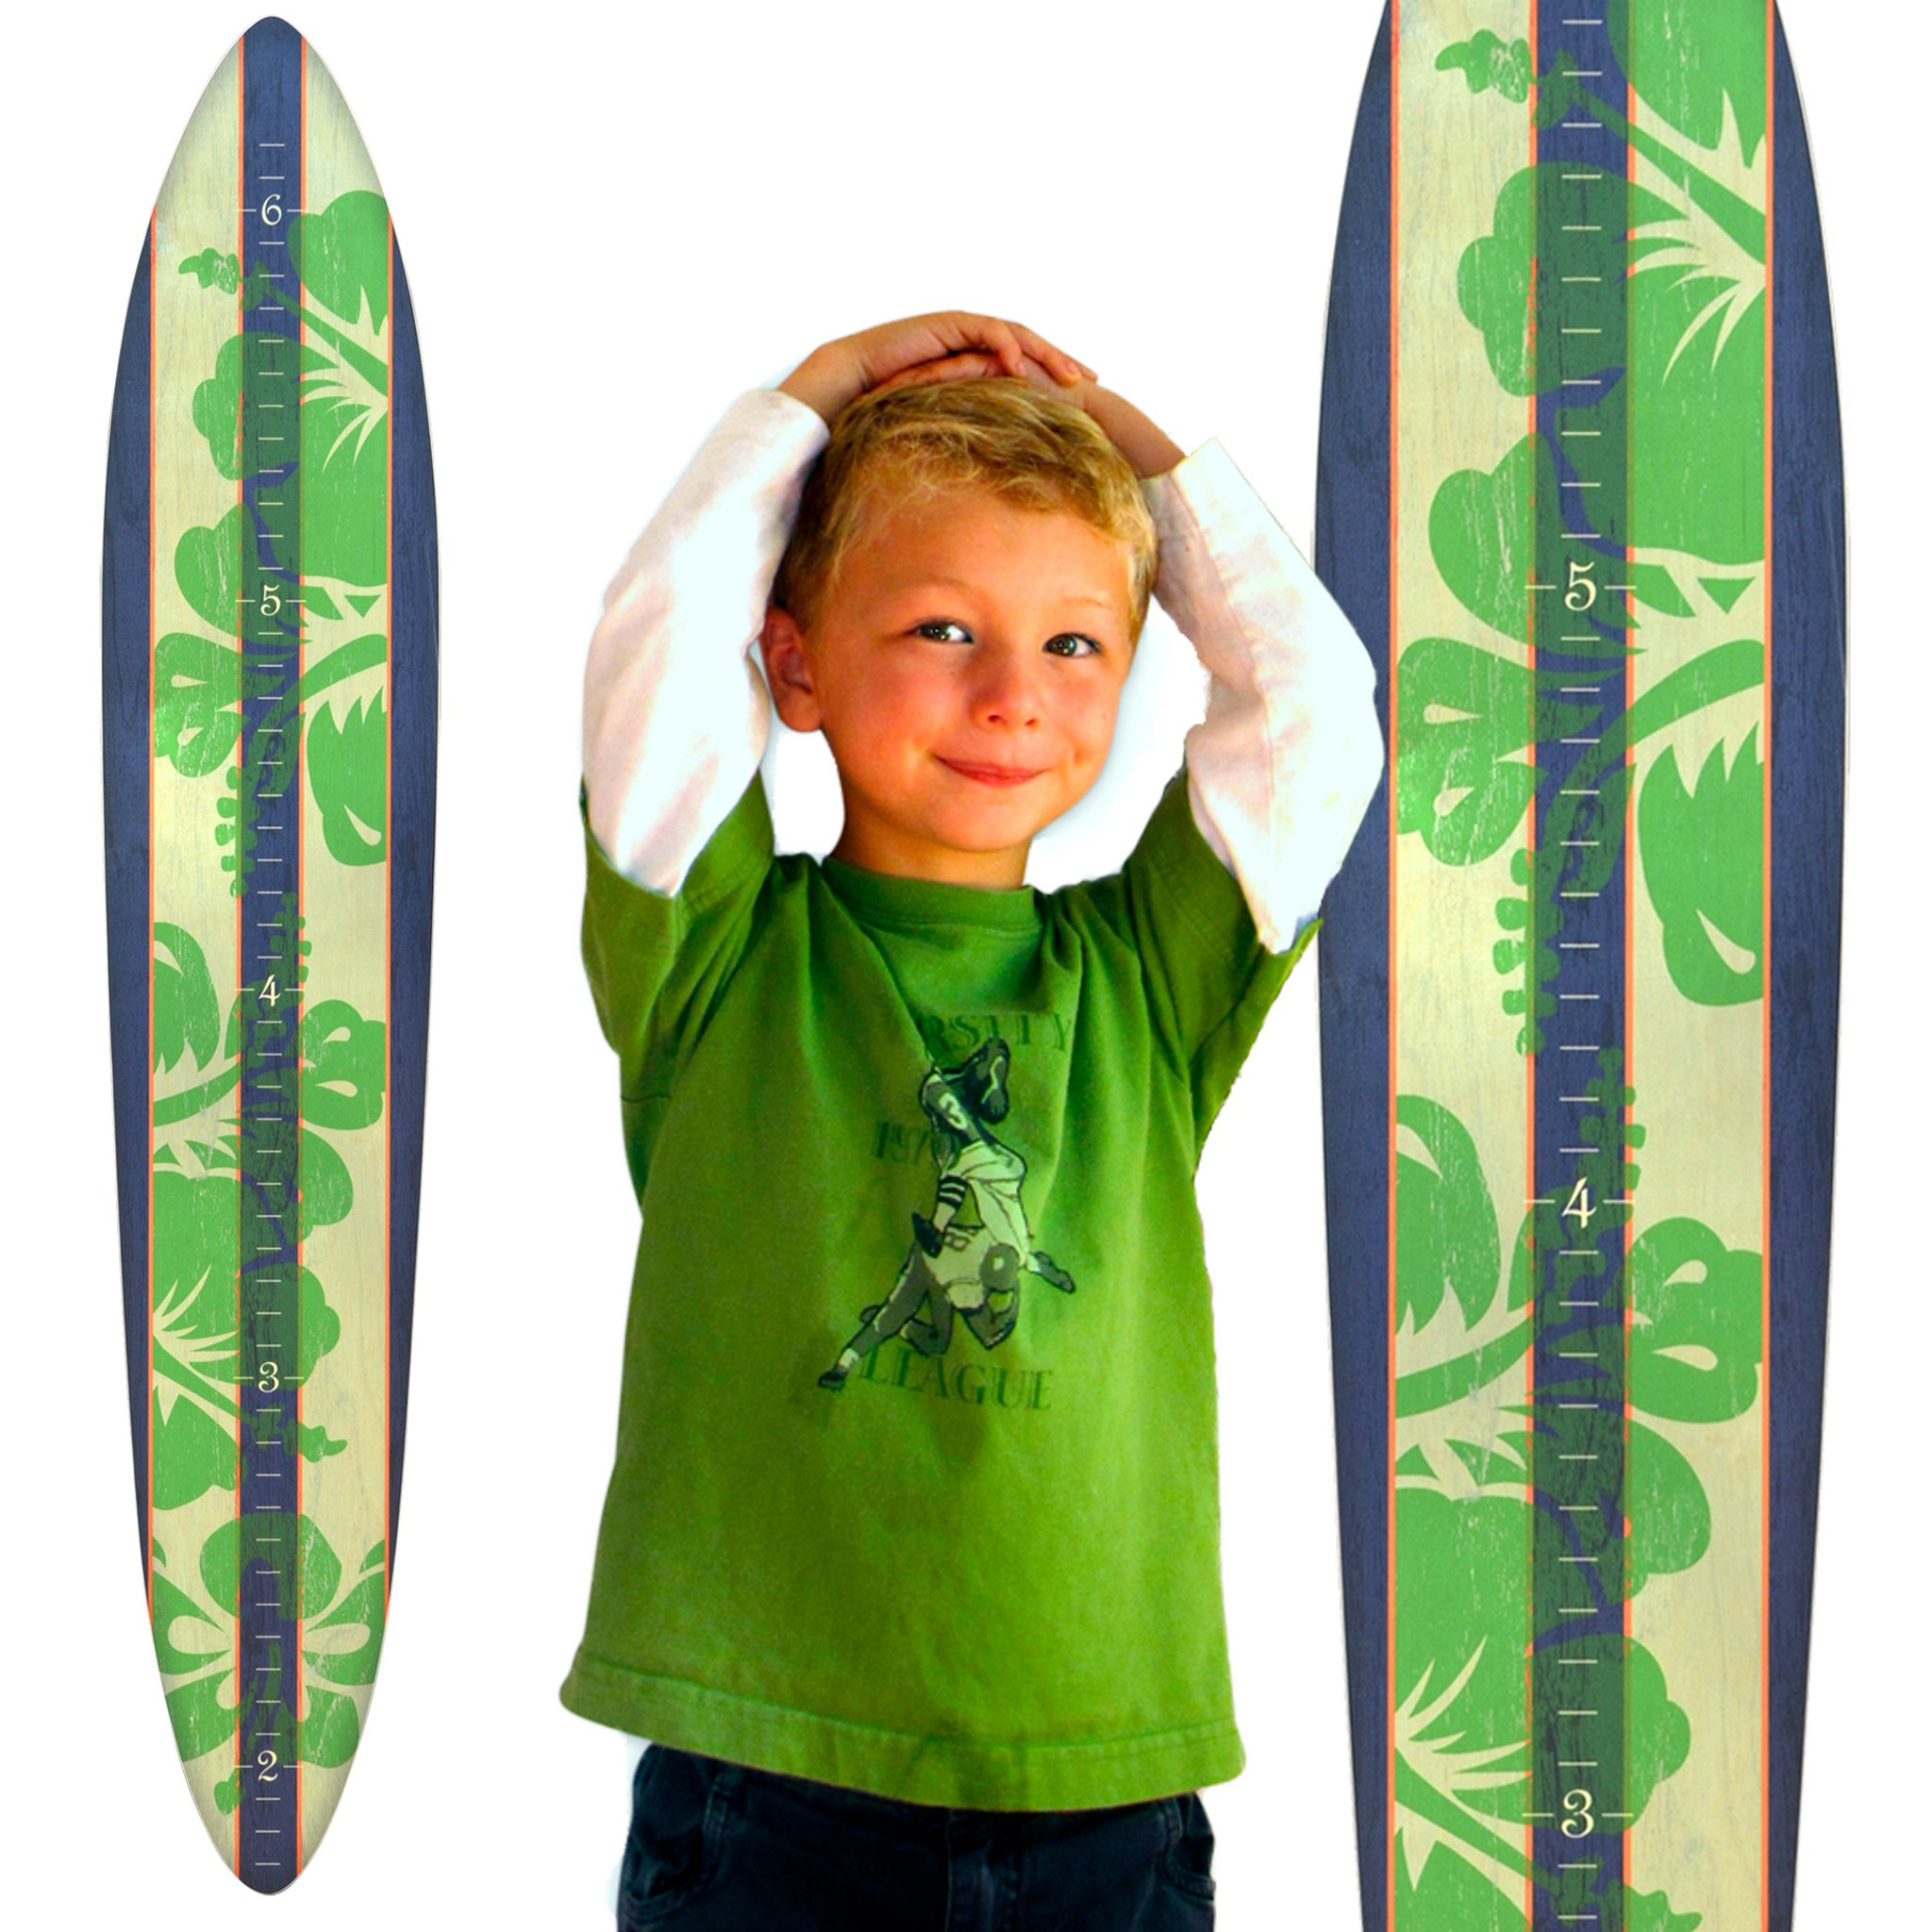 Growth Chart Art | Wooden Surfboard Growth Chart for Boys | Baby Shower Gift | Navy Green Hibiscus by Growth Chart Art